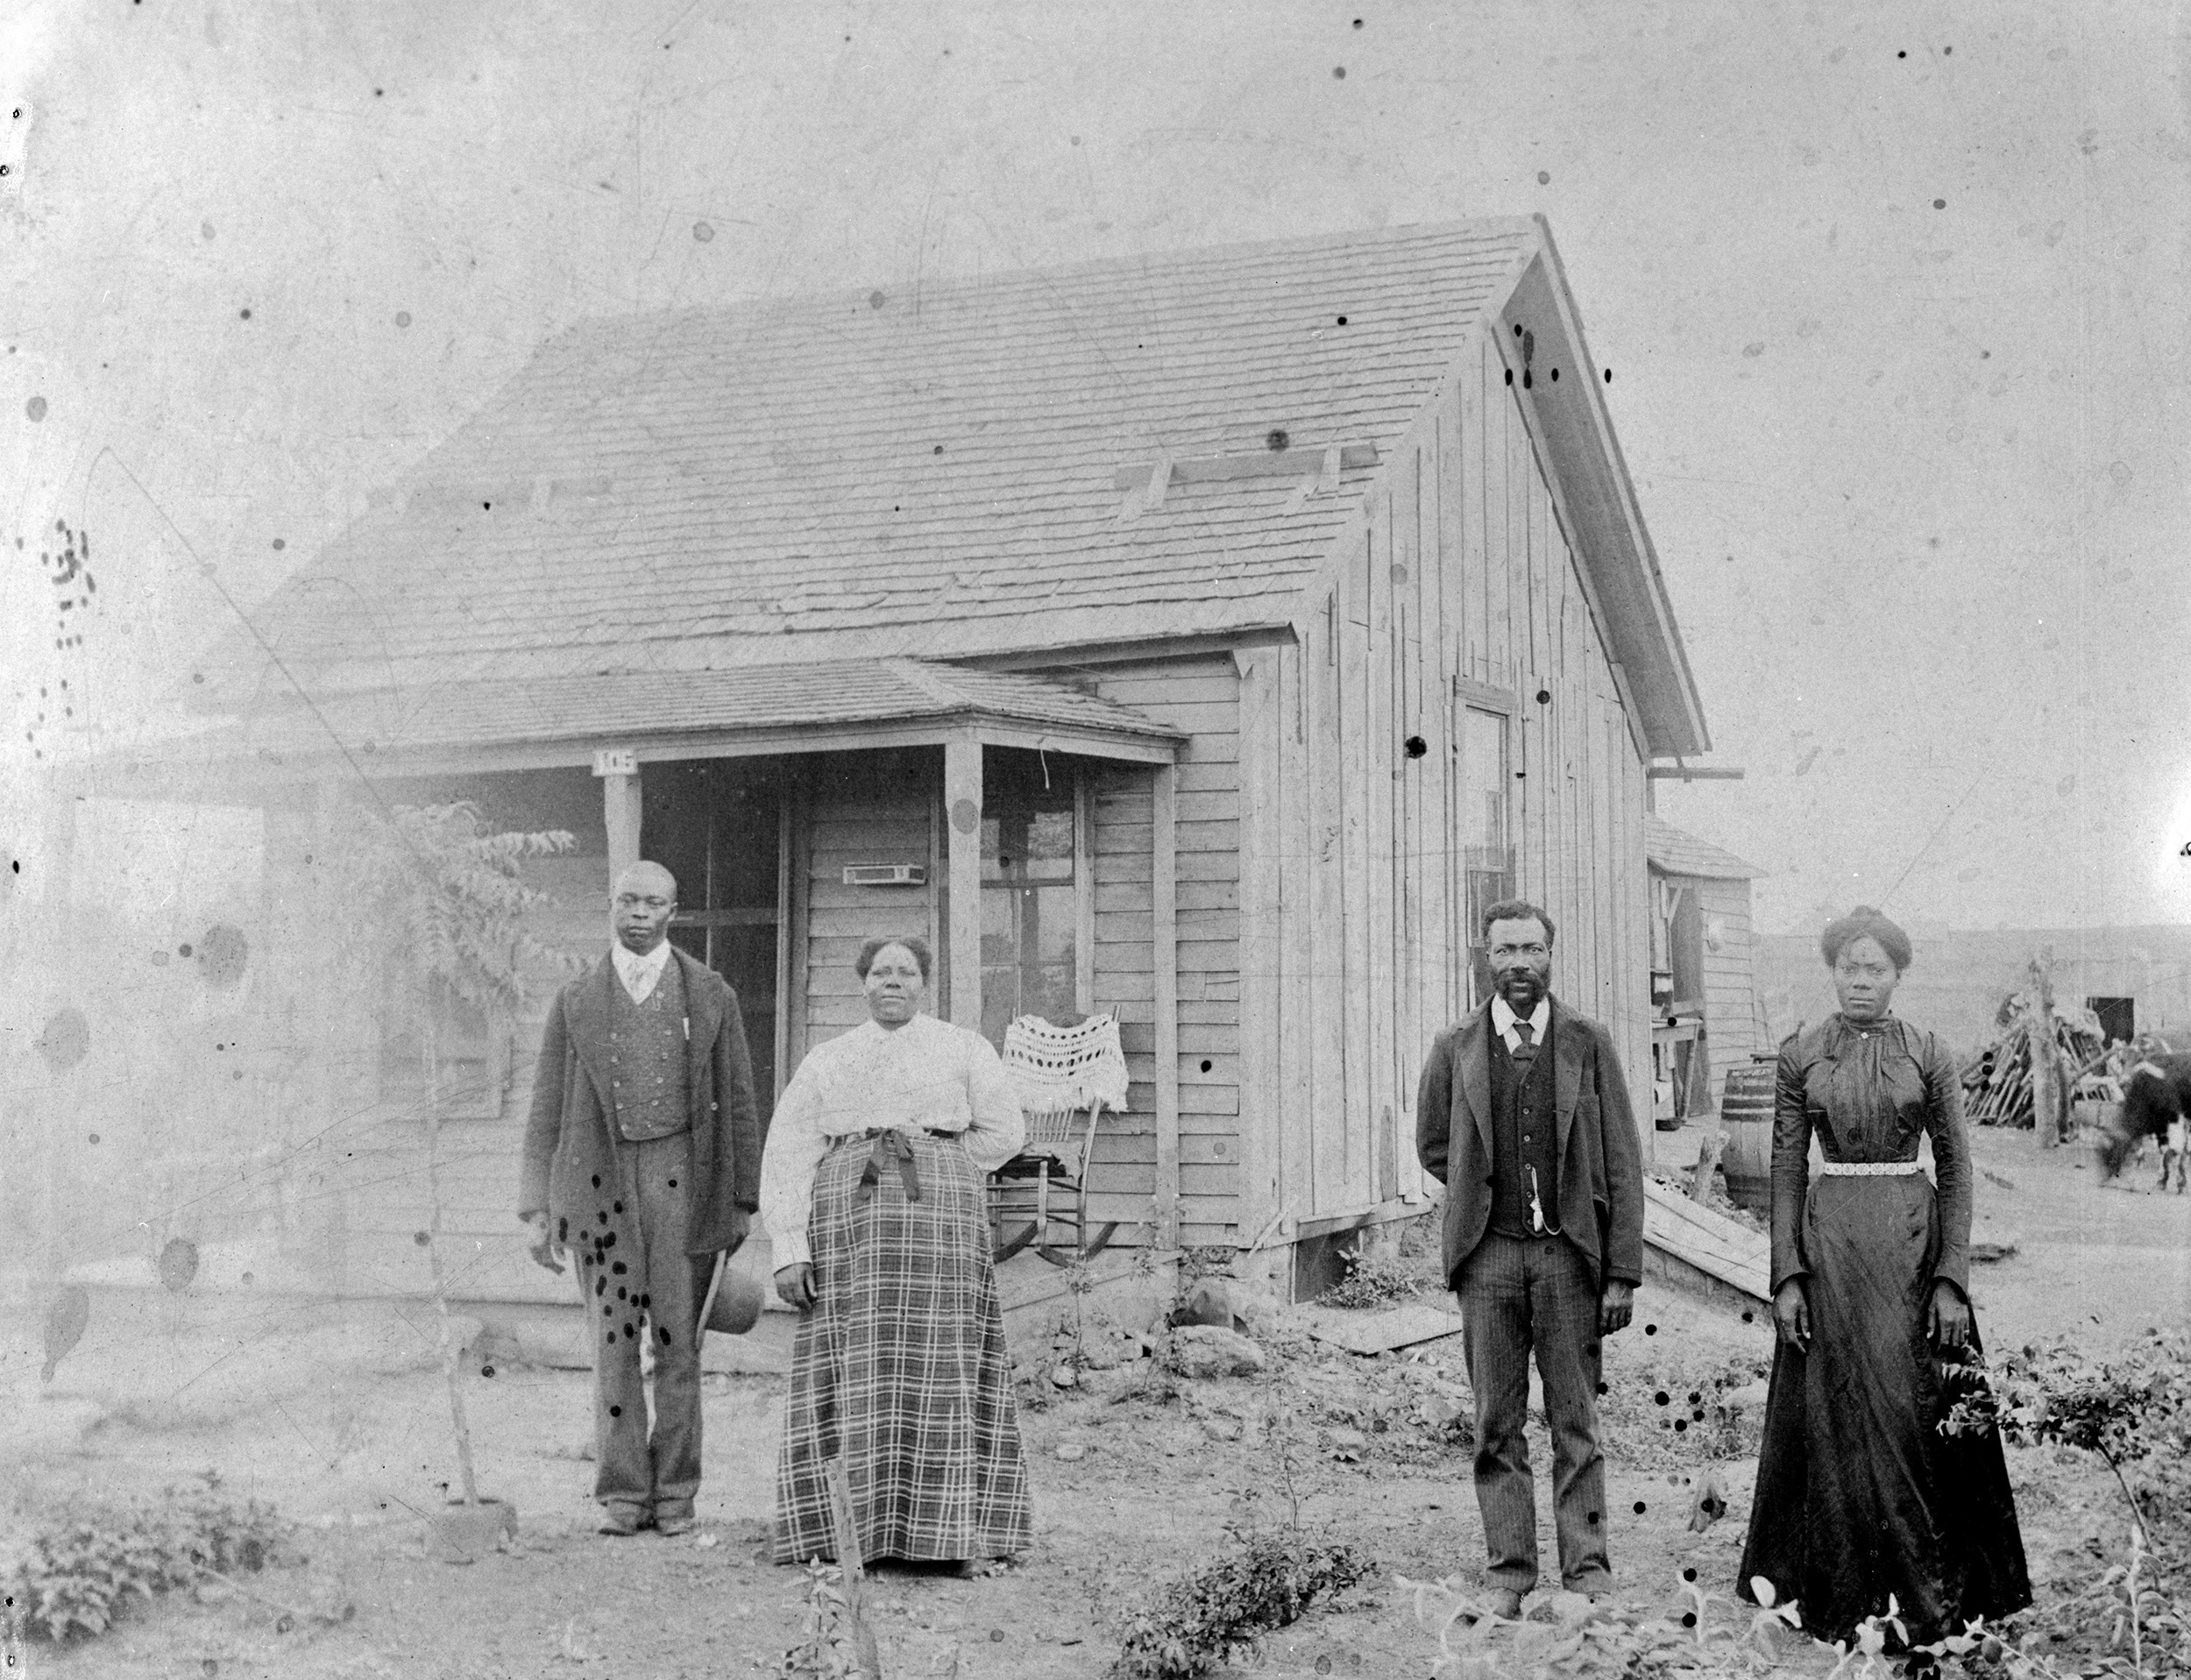 One man's dream of an all-black settlement came alive in